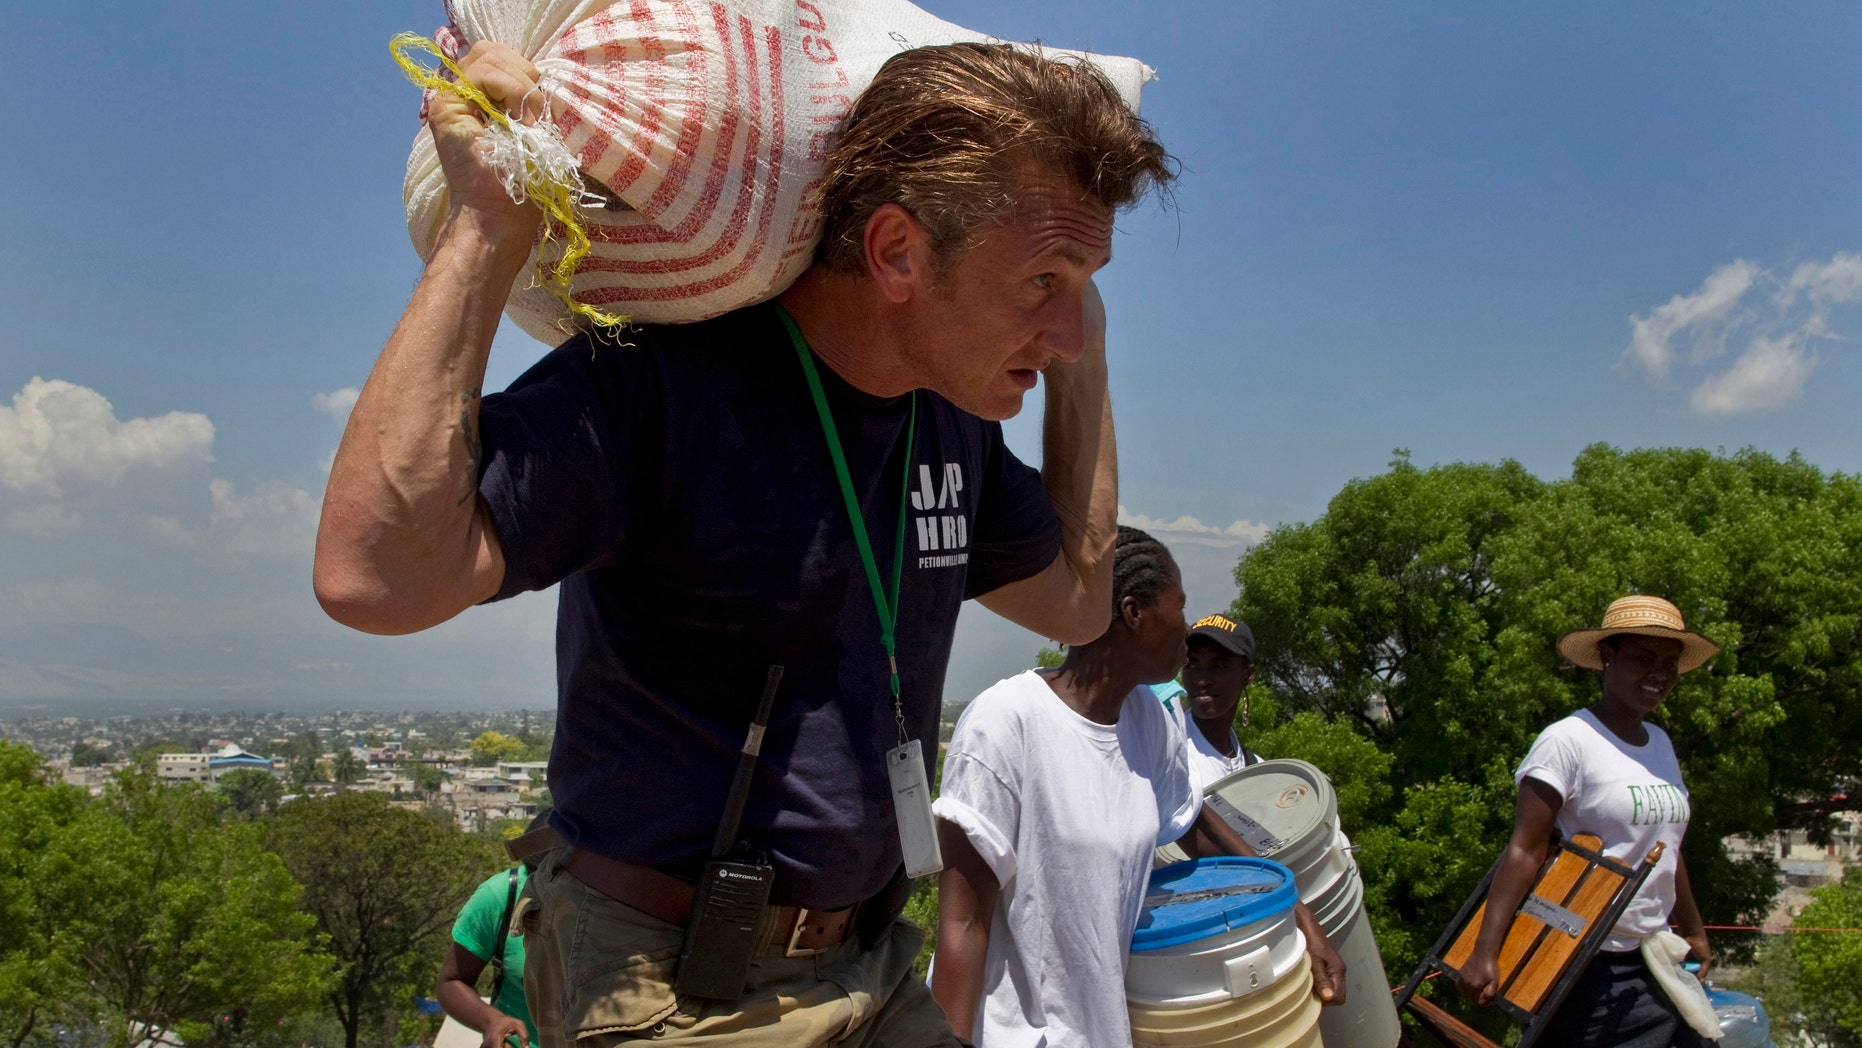 In this Saturday, April 10, 2010 file photo, U.S. actor Sean Penn carries the belongings of a person displaced by the earthquake as people are relocated from the Petionville Golf Club to a new camp, Corail-Cesselesse, in Port-au-Prince, Haiti. (AP Photo/Ramon Espinosa)